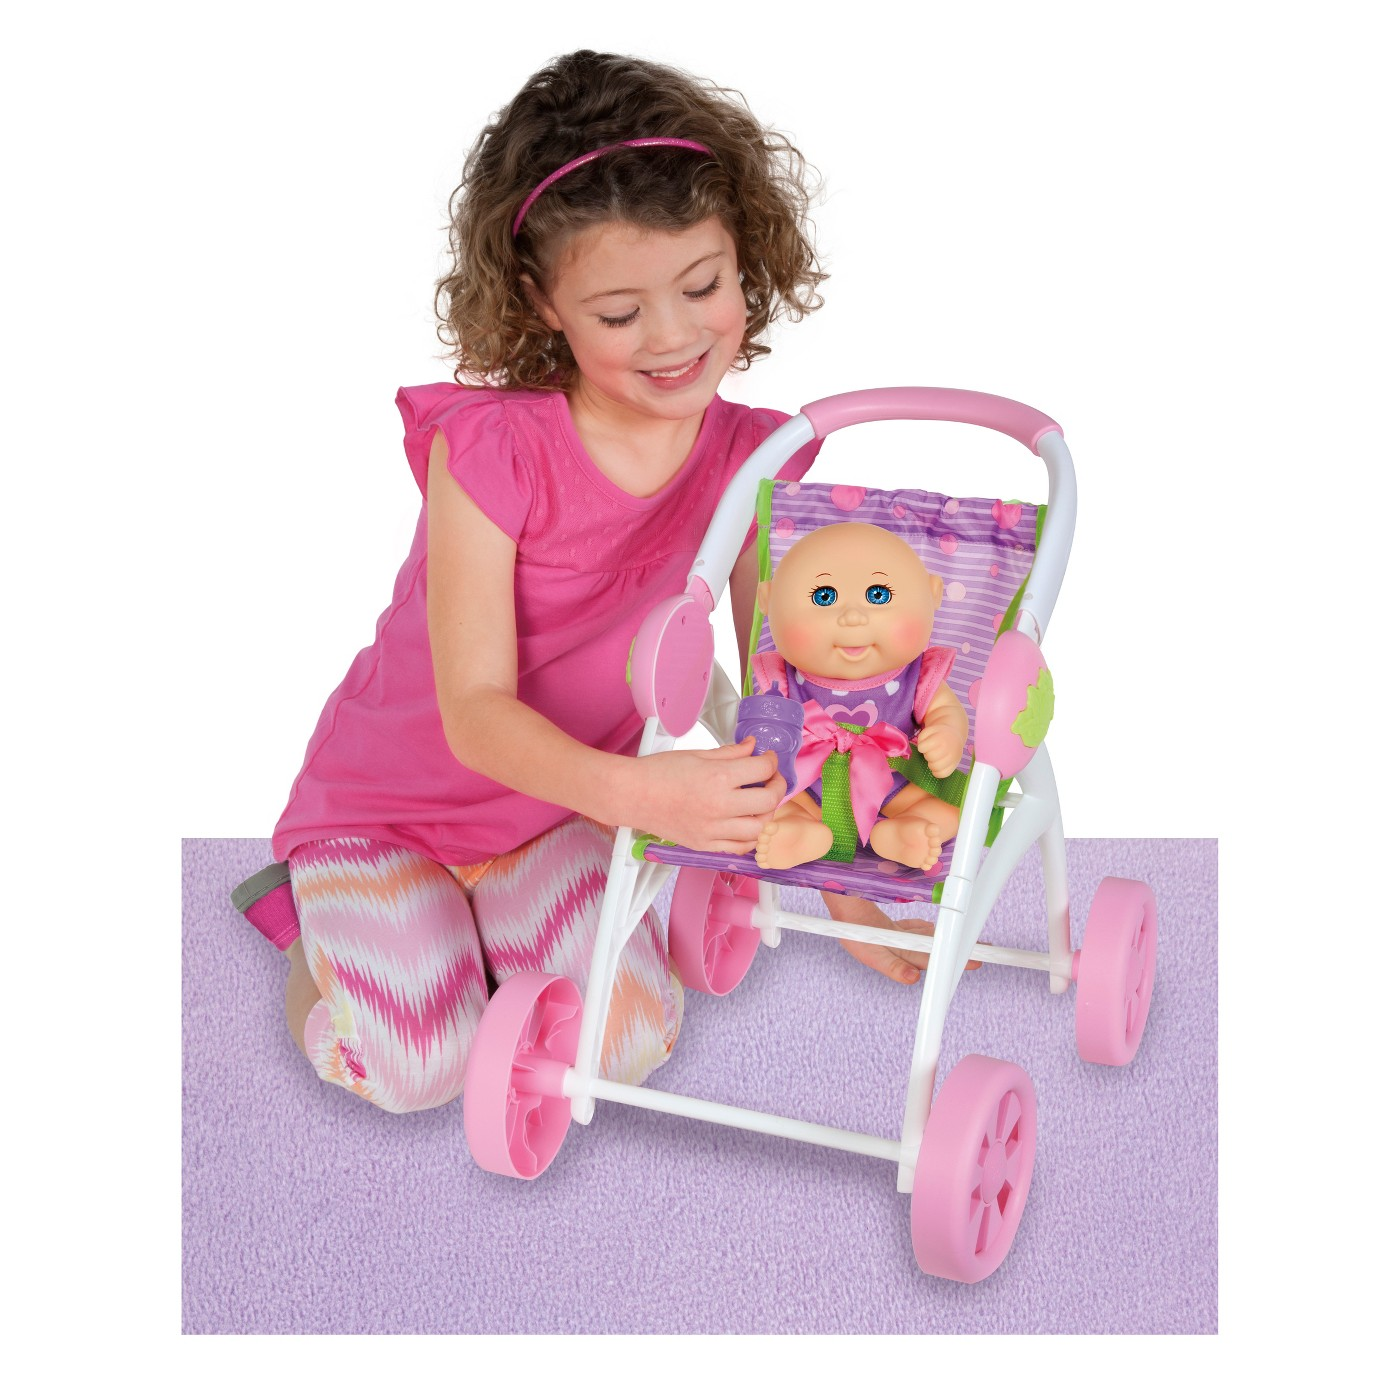 Cabbage Patch Kids Drink n Wet Travel Set - image 4 of 6